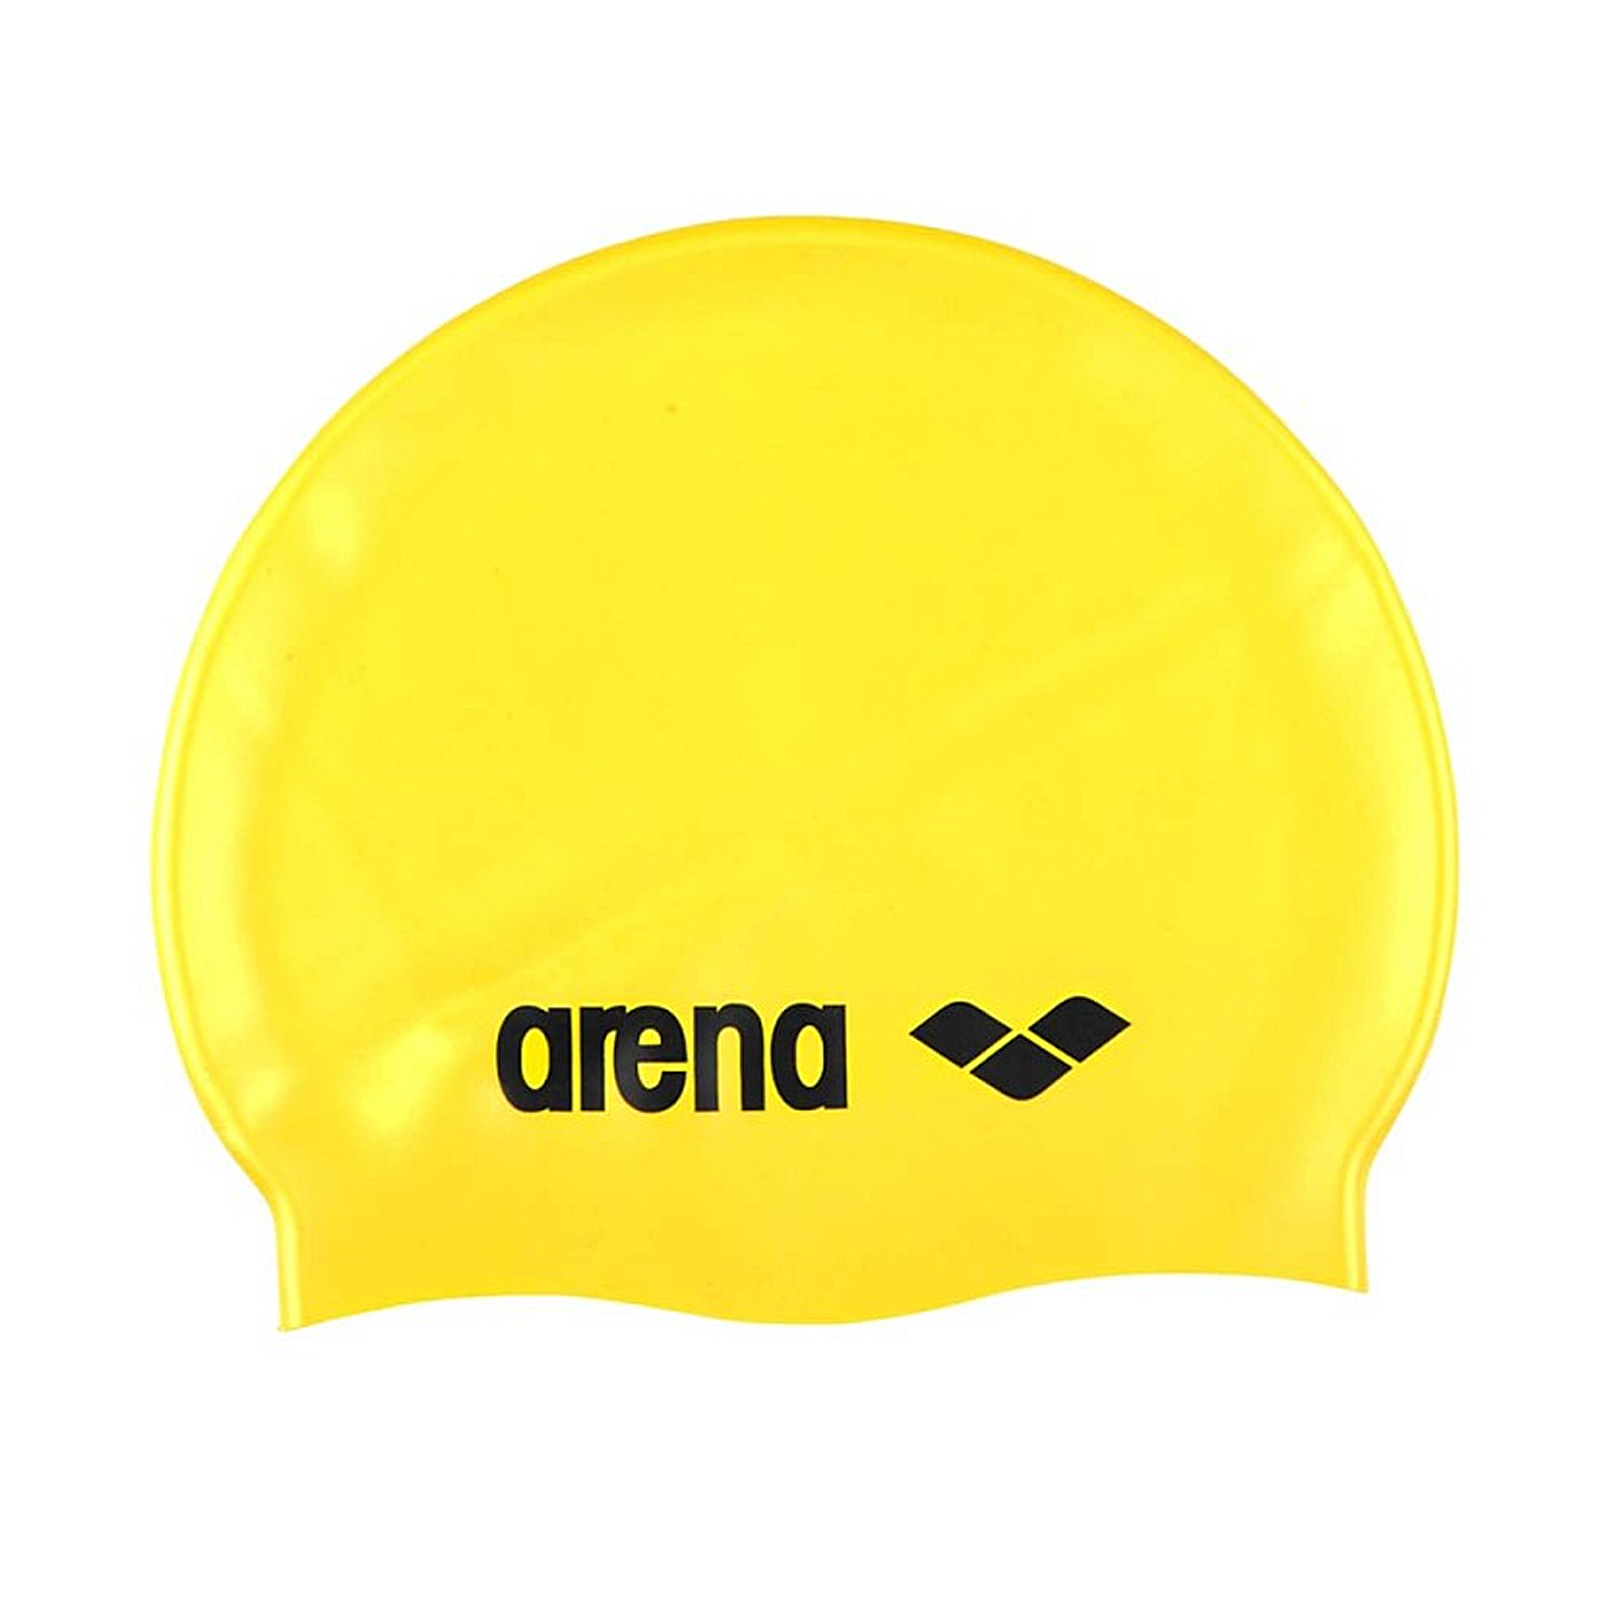 Arena - 91662 CLASSIC SILICONE - LIME BLACK 010 (65/5971)